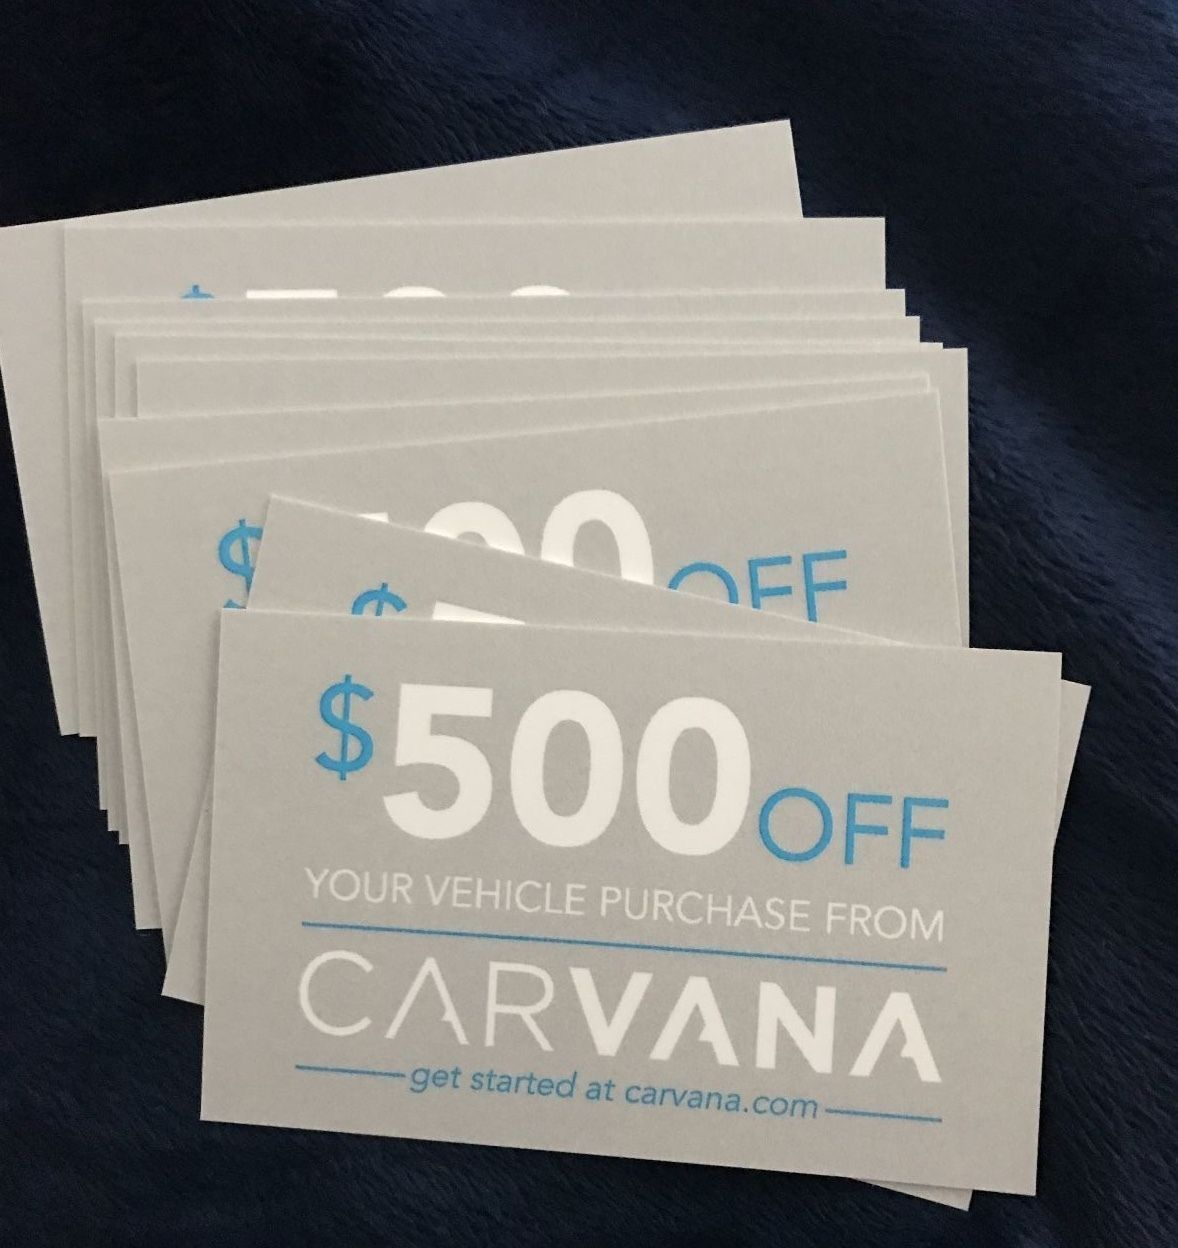 Carvana 500 Coupon Referral Code Delivered Electronically A To Acquire Off